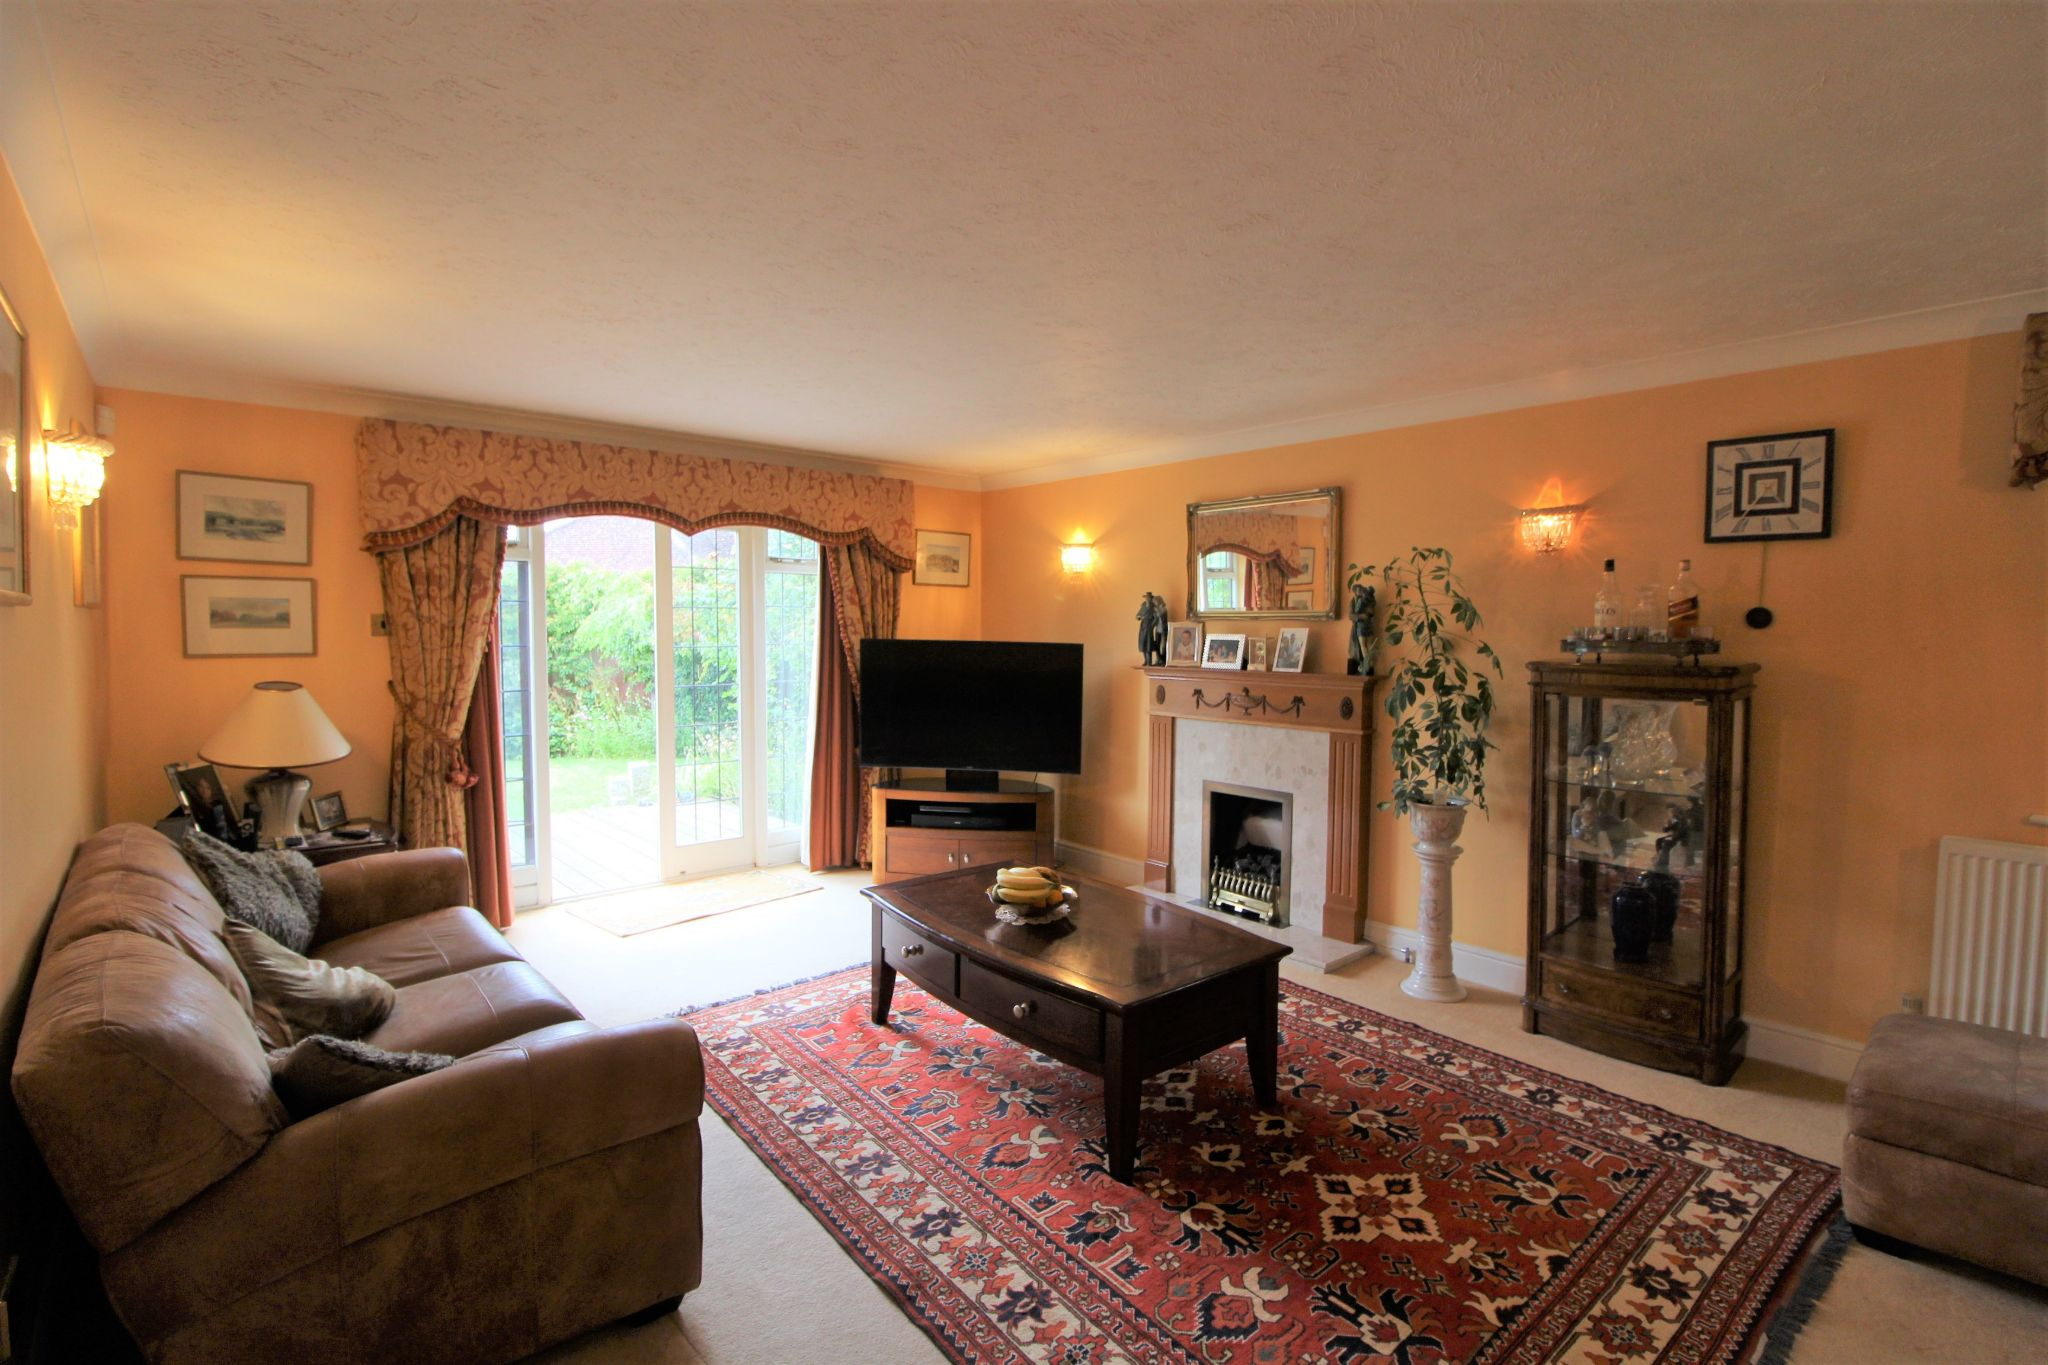 5 bedroom detached house For Sale in West Cheshunt - Photograph 3